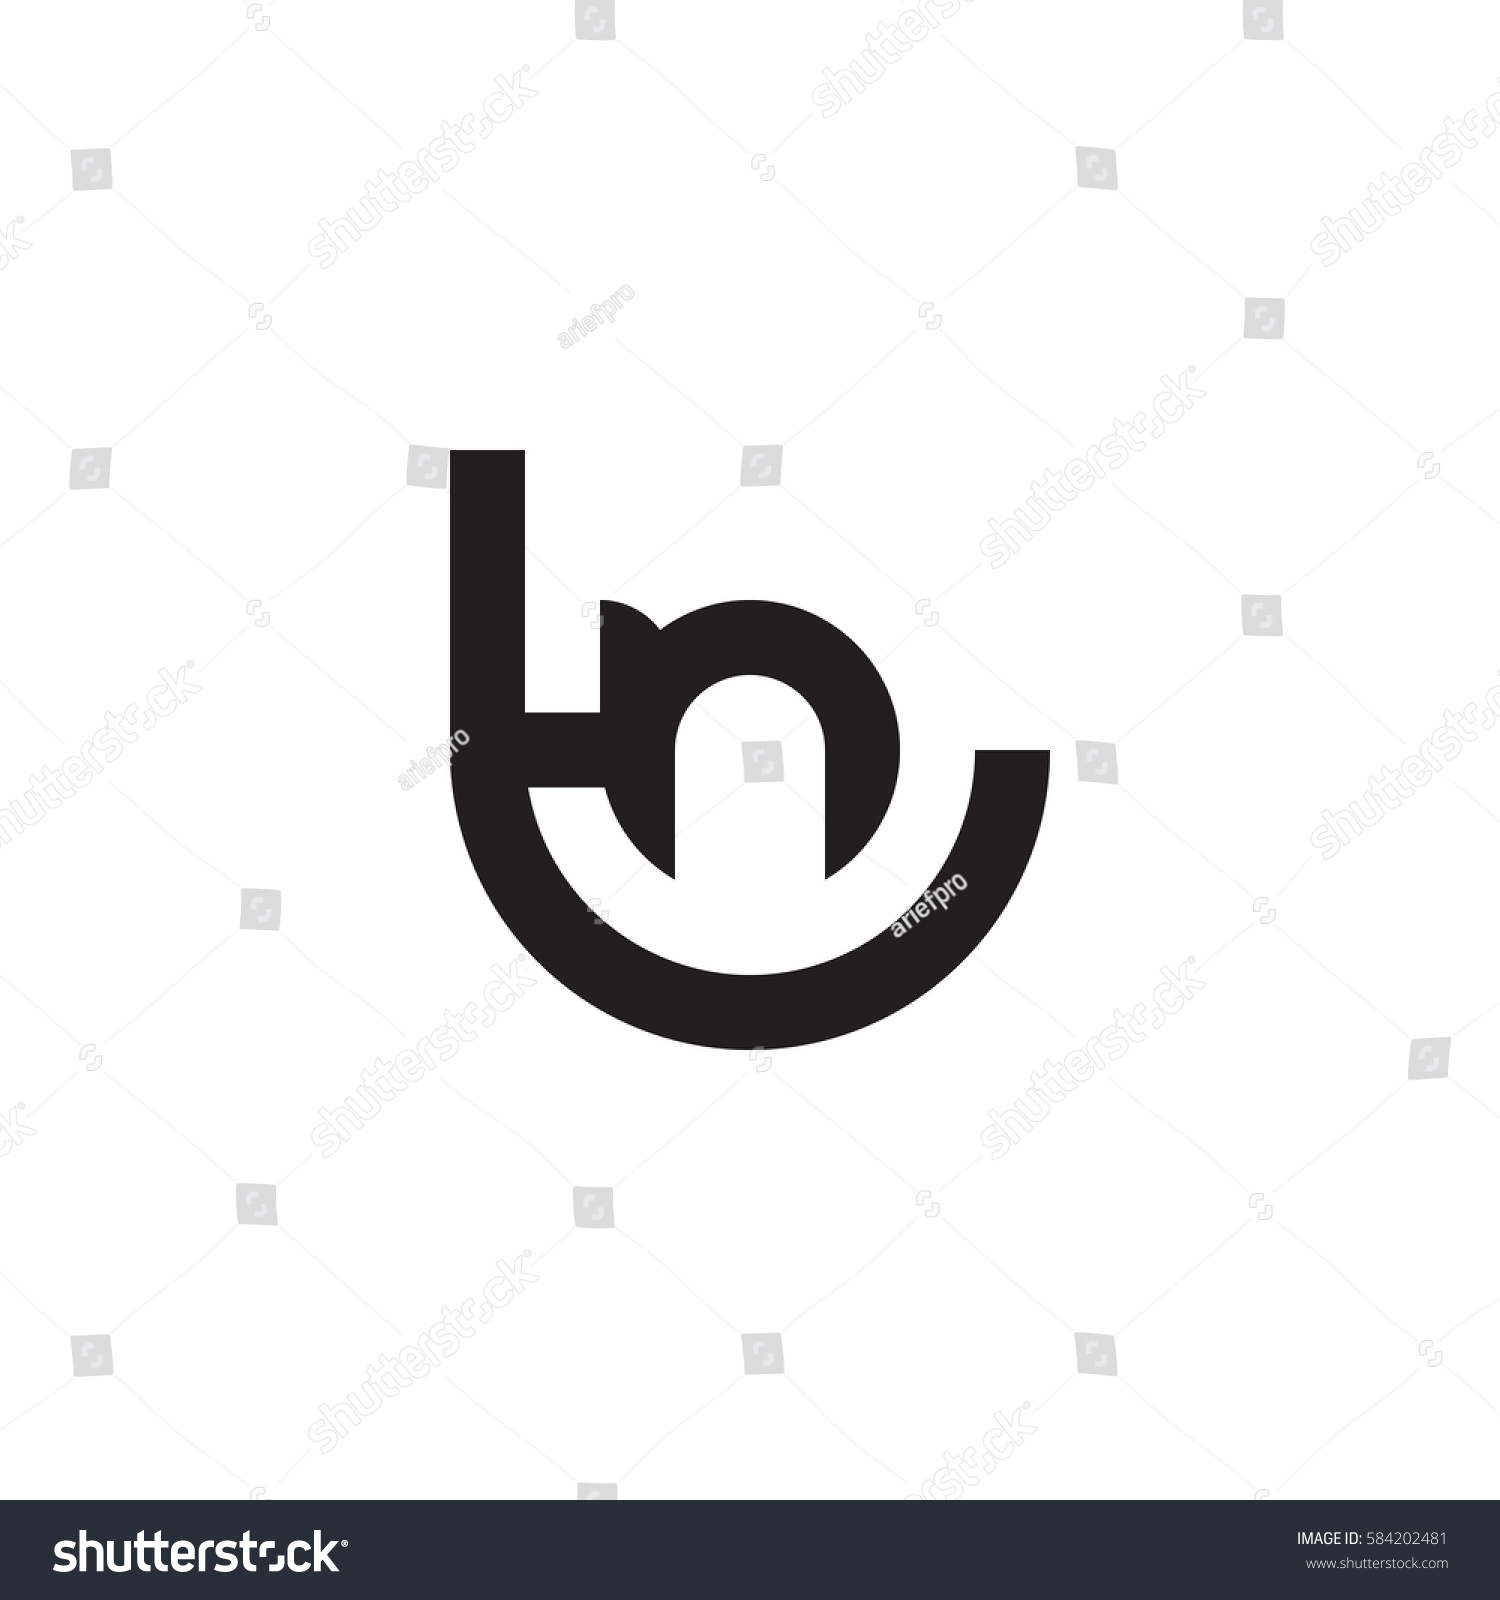 Initial Letter Logo Tn Nt N Stock Vector Royalty Free 584202481